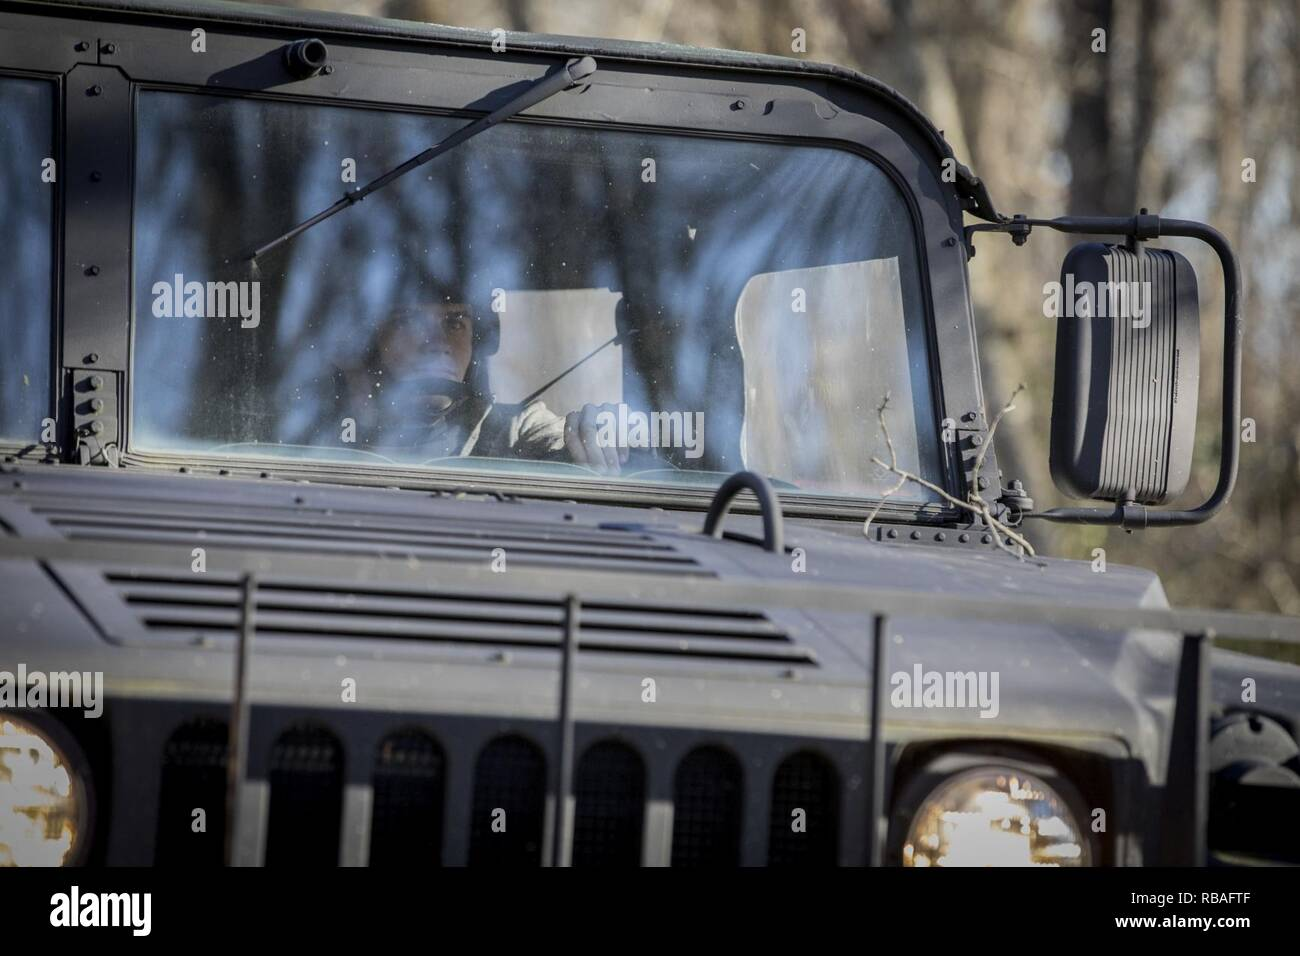 A Humvee from a New Jersey police department is driven on